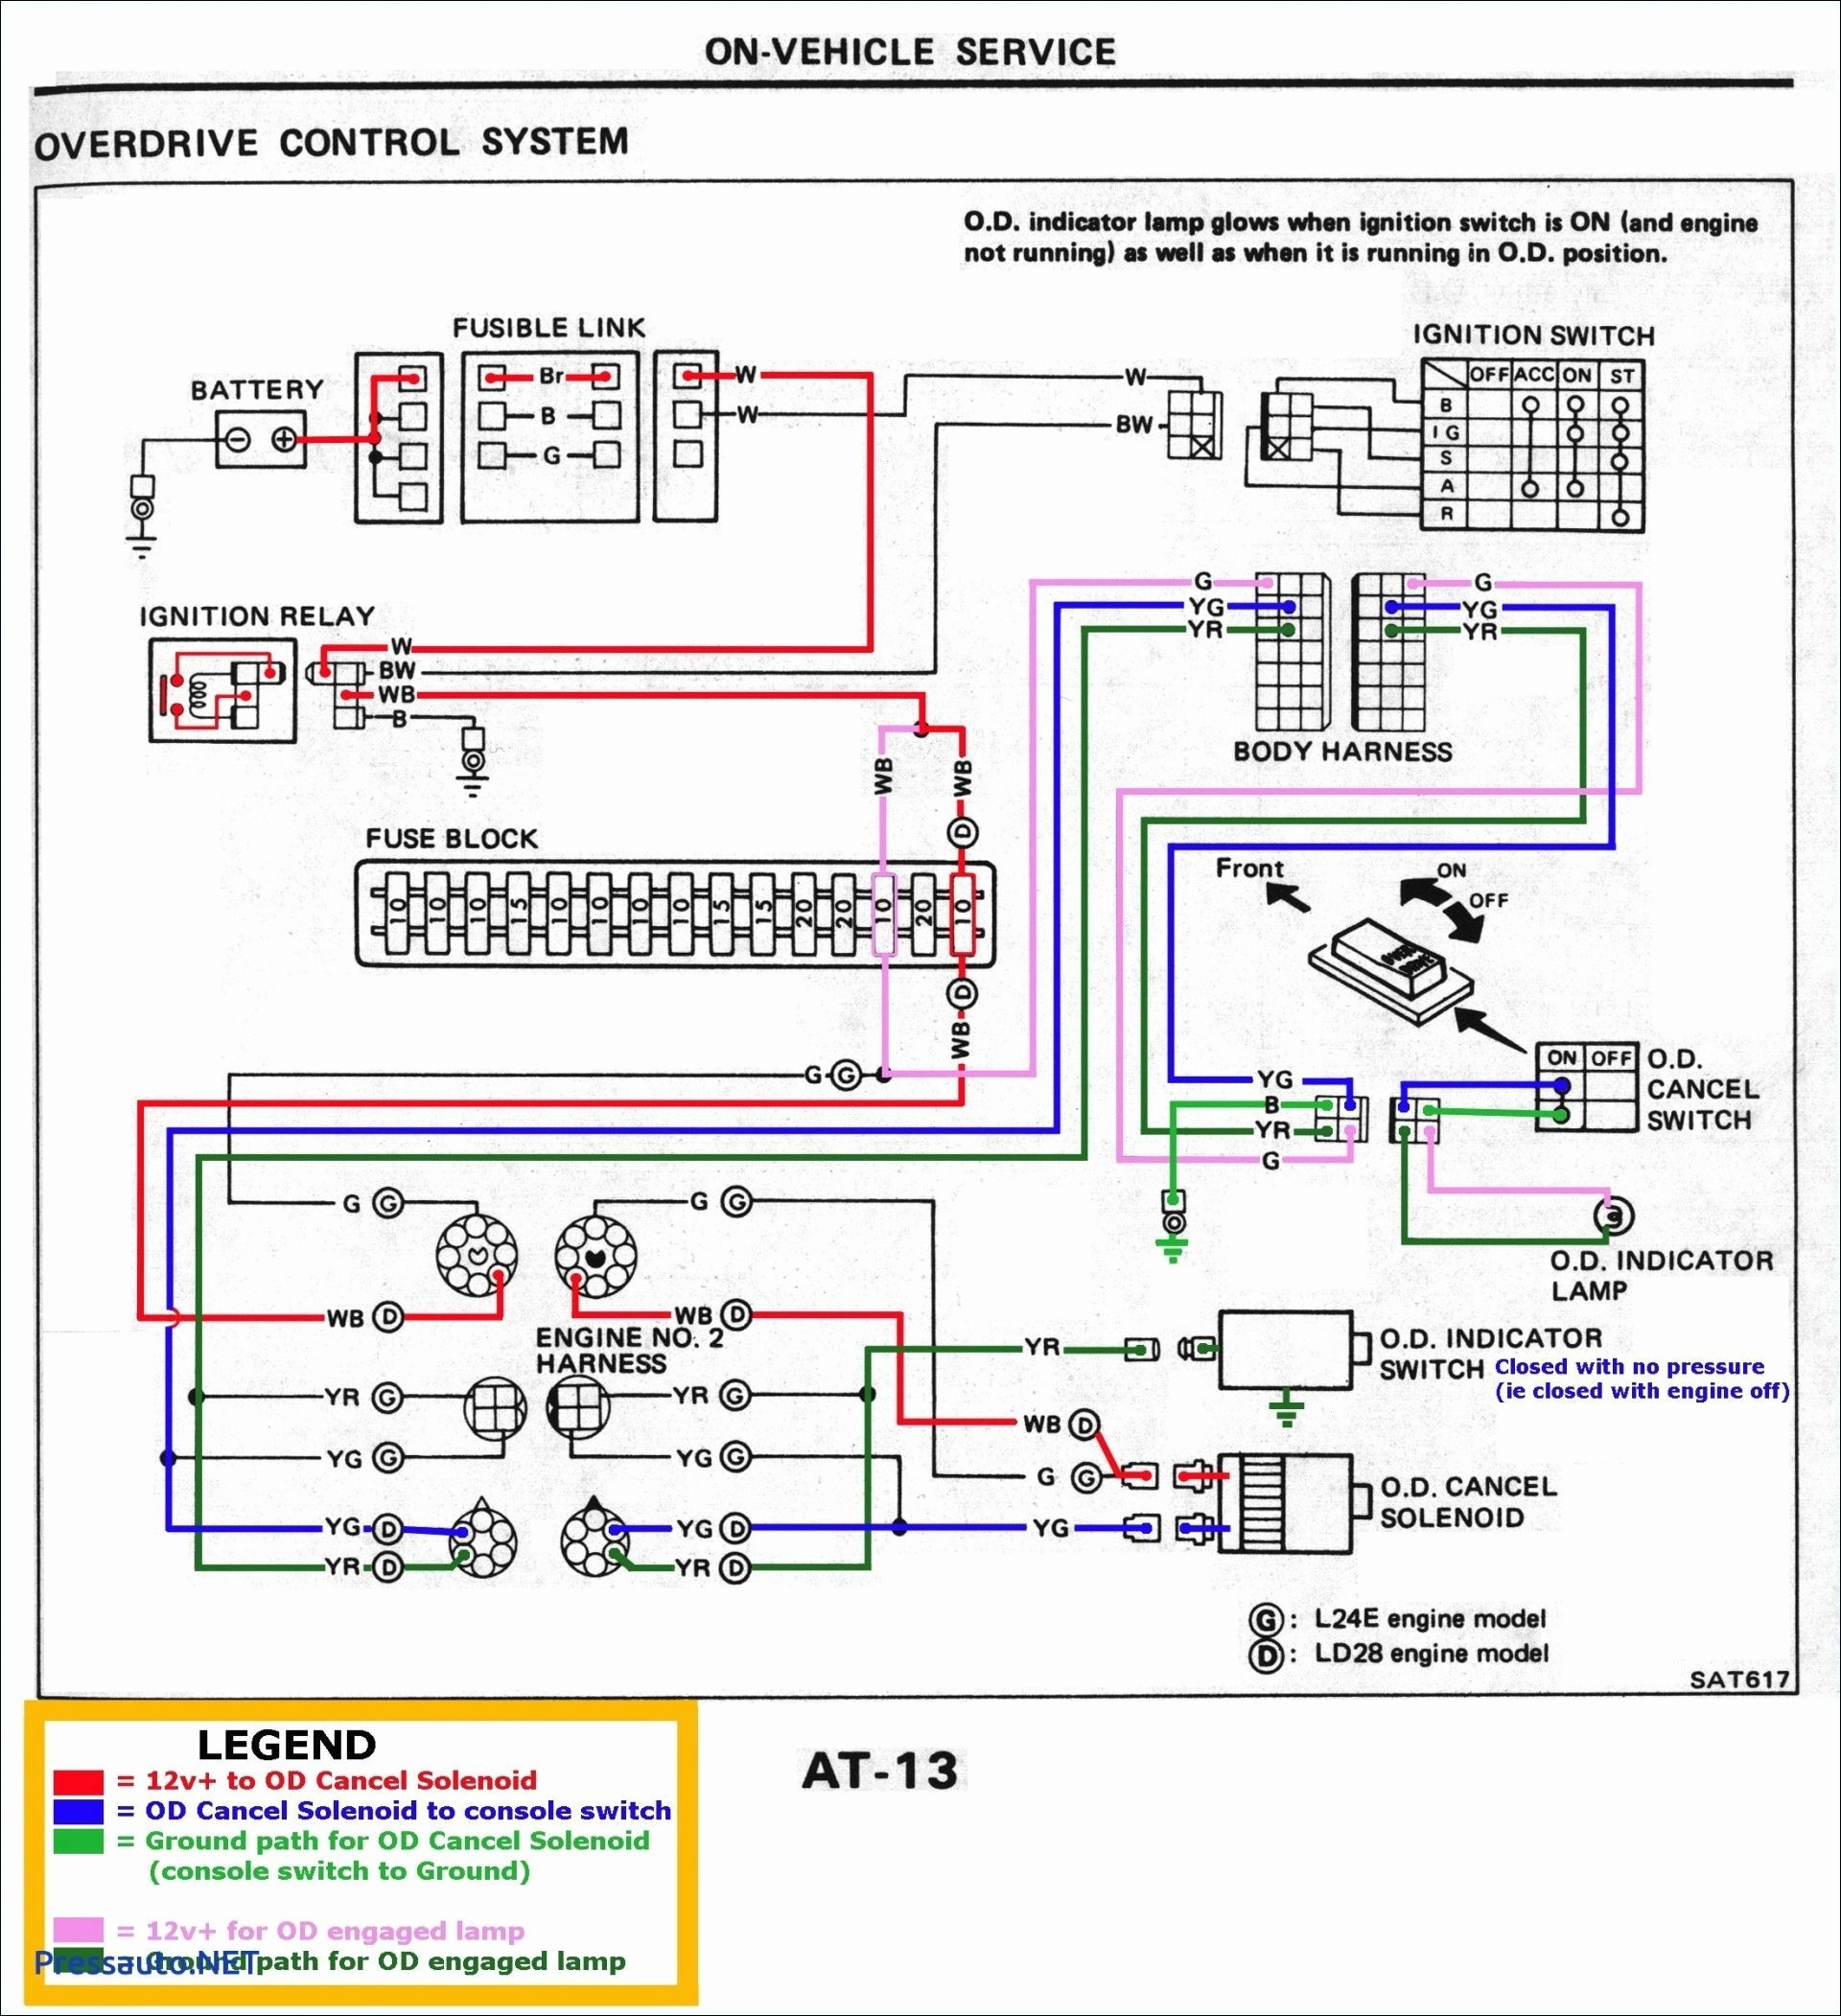 12v relay wiring diagram spotlights Download-Gm Relay Wiring Diagram New Wiring Diagram 12v Relay Refrence Wiring Diagram Relay Spotlights 14-j